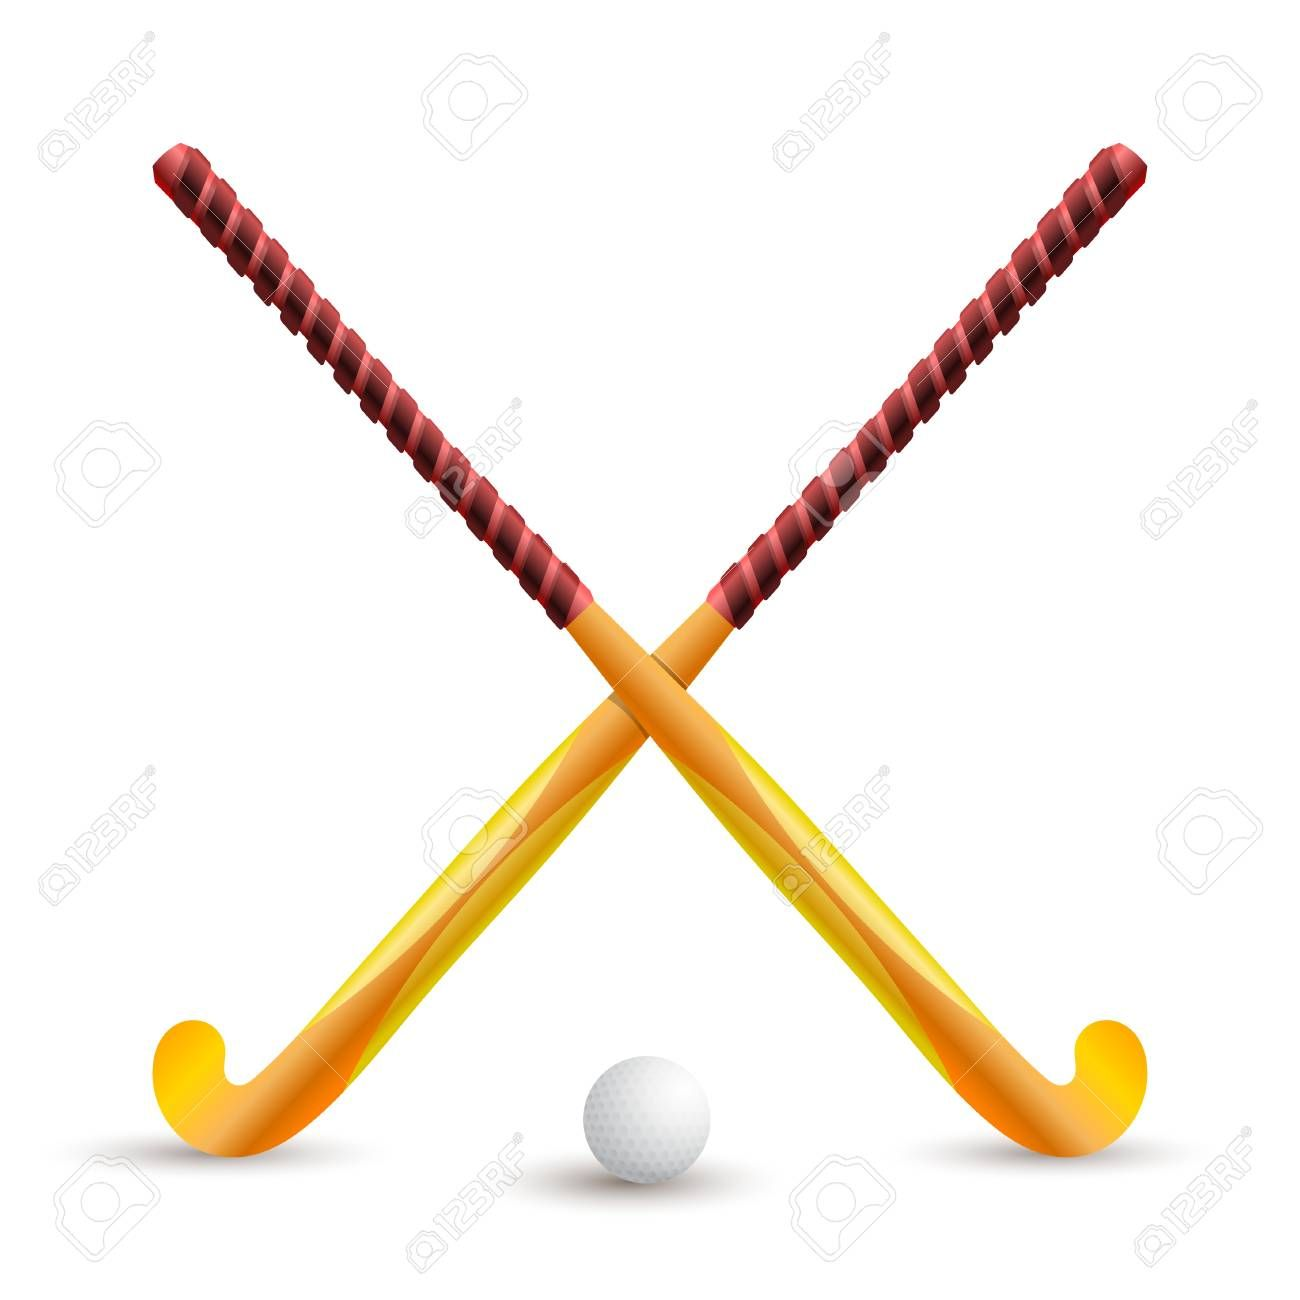 Field Hockey Sports Supplies For Playing On A White Background Hockey Stick And Ball Crossed Sticks For Hockey Web Design Trends Hockey Stick Field Hockey